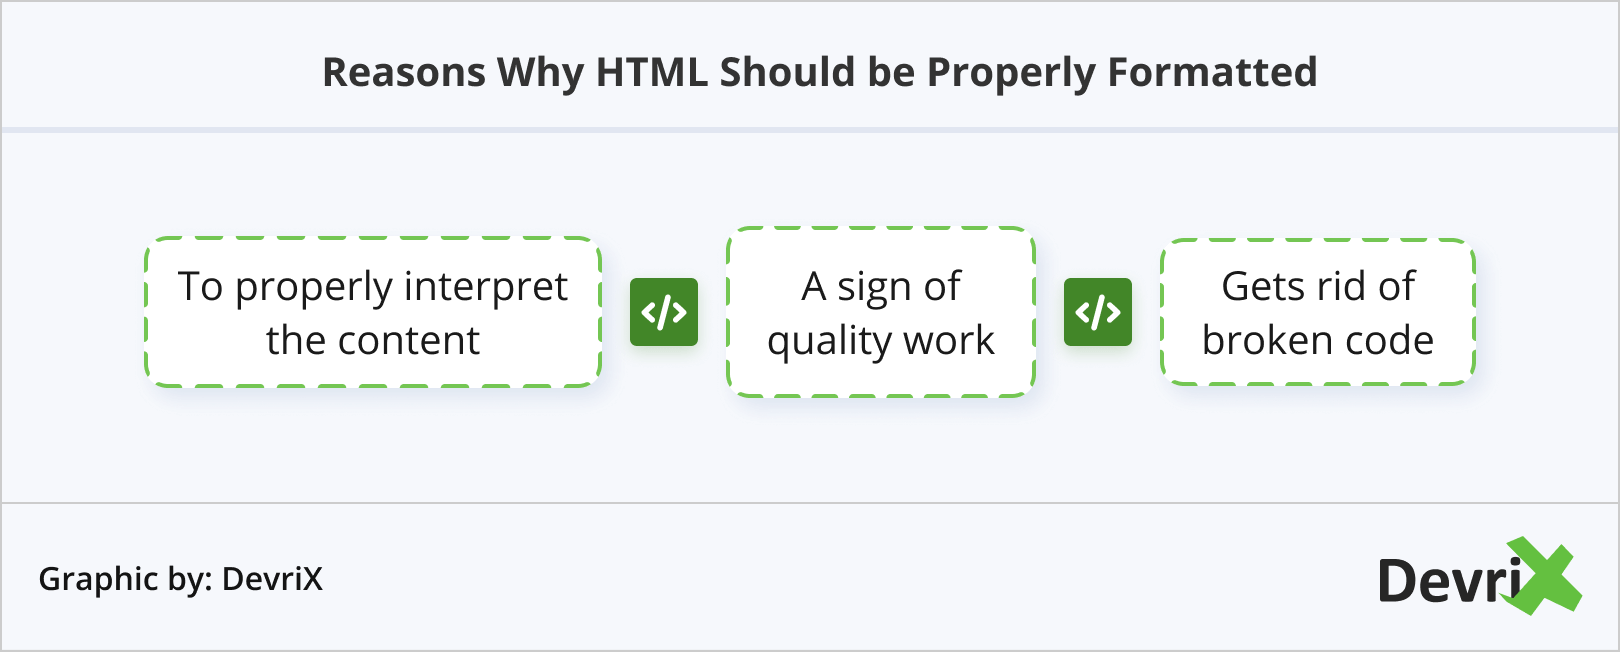 Reasons Why HTML Should be Properly Formatted